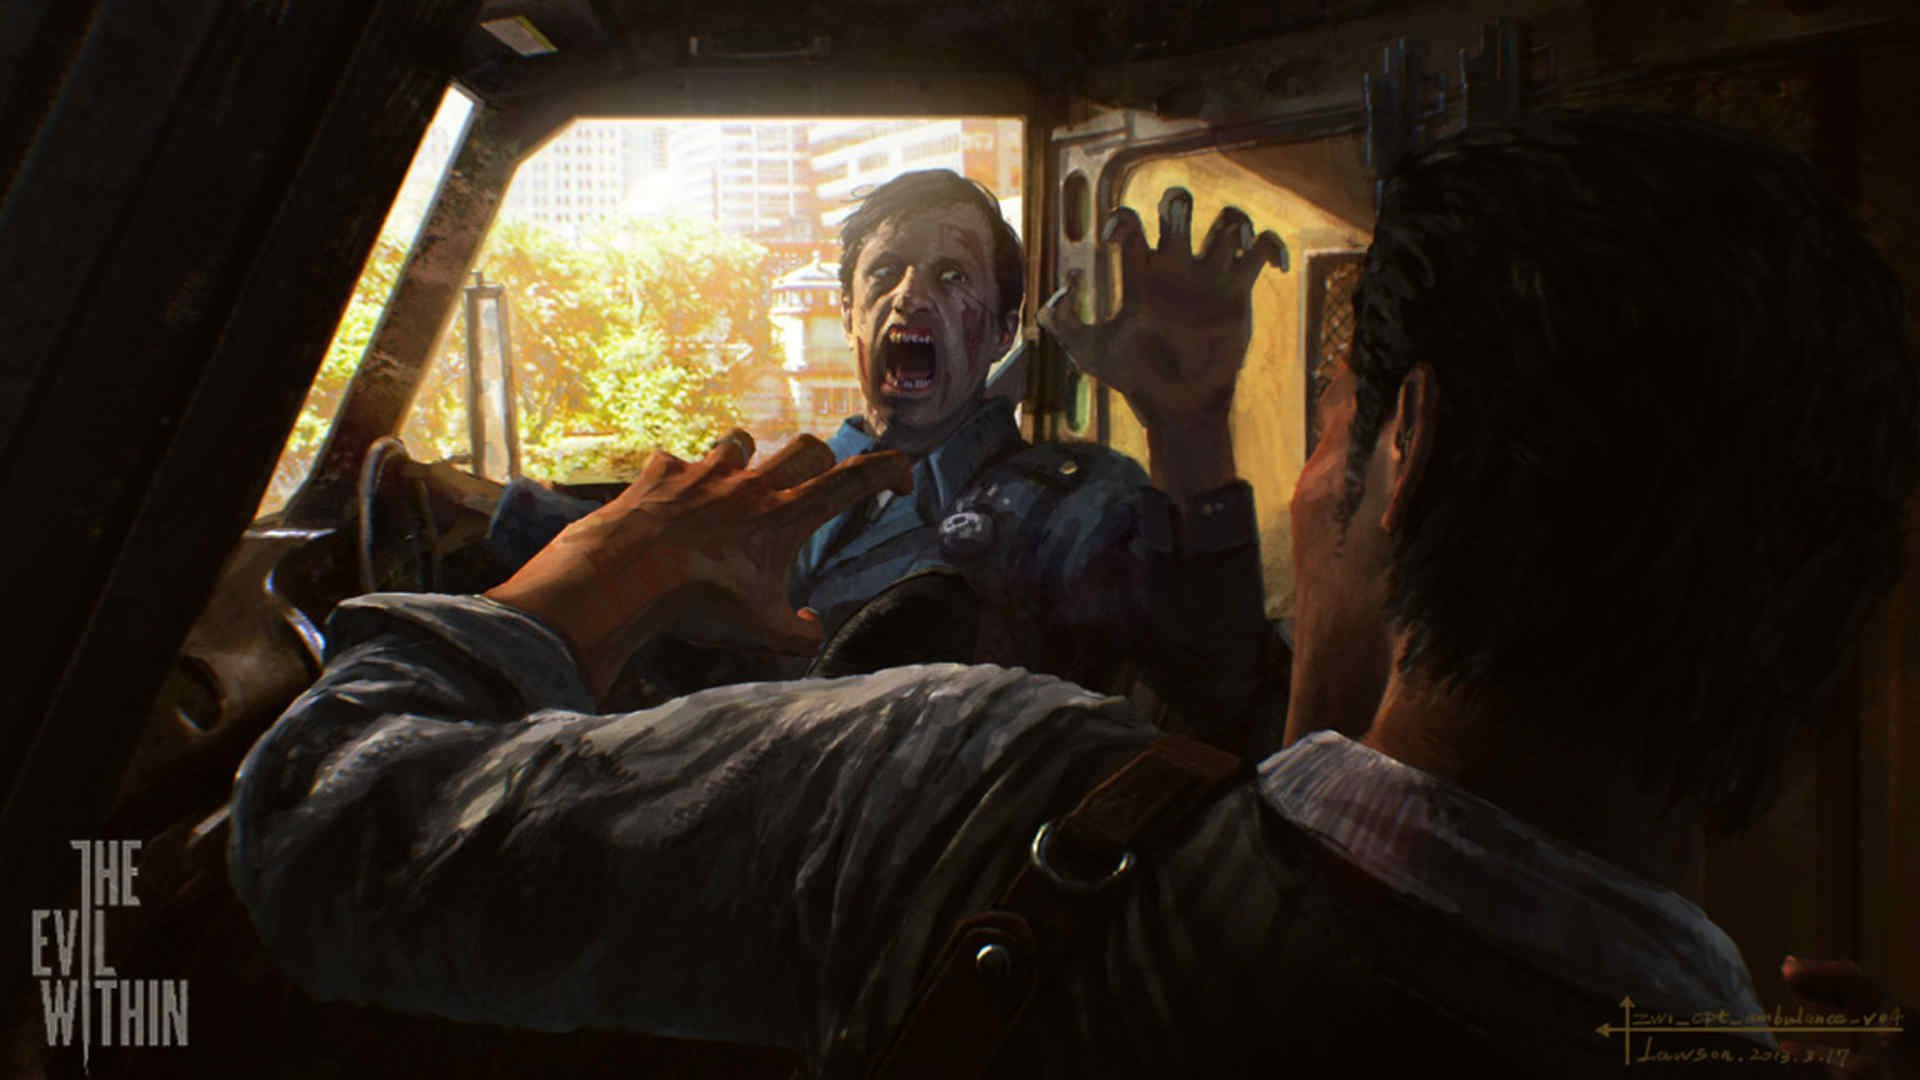 Zombie Survival Wallpaper The Evil Within Survival